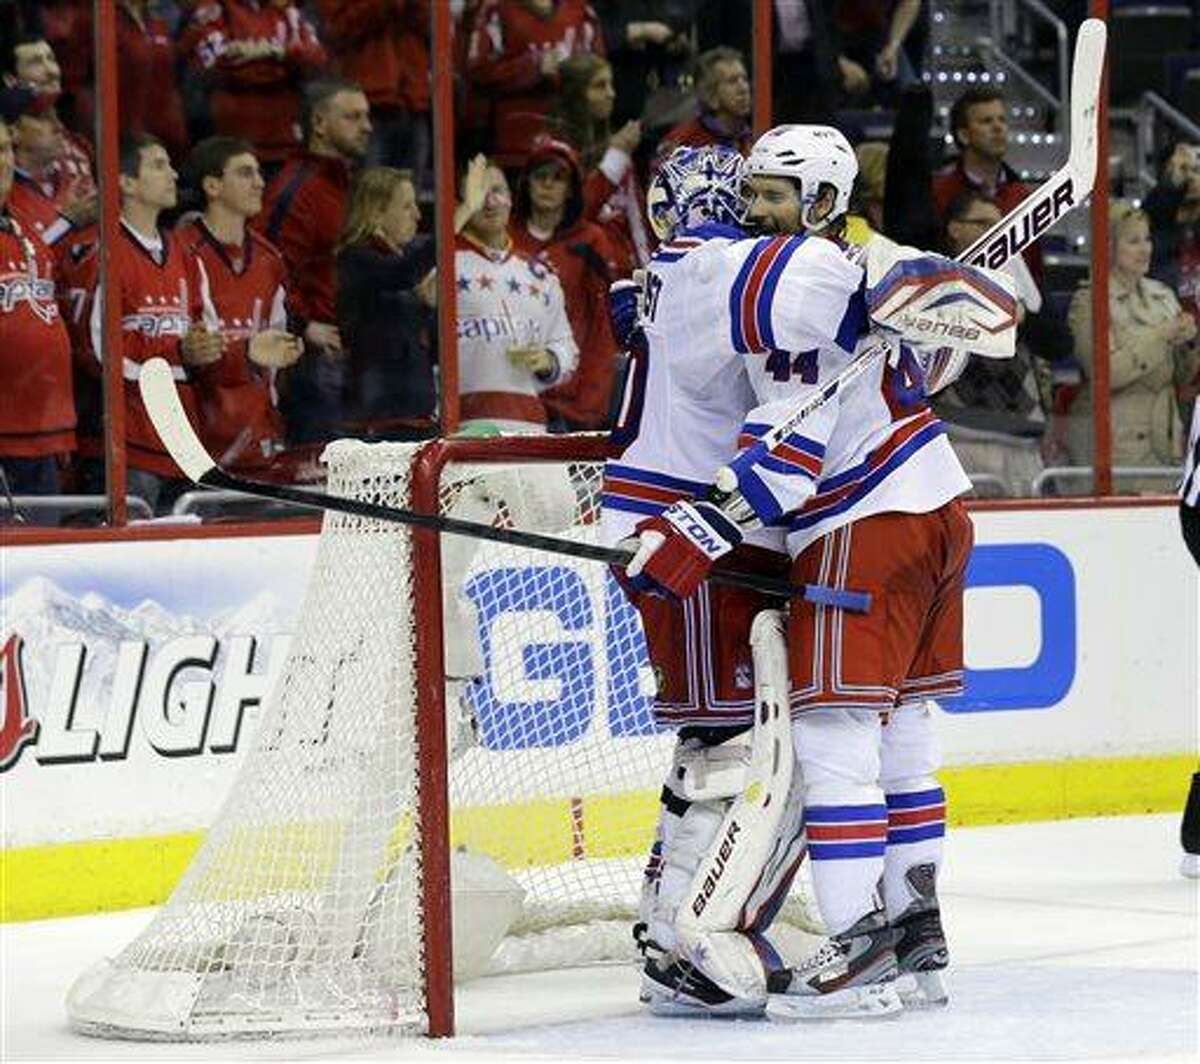 New York Rangers goalie Henrik Lundqvist (30), from Sweden, celebrates with defenseman Steve Eminger (44) after Game 7 first-round NHL Stanley Cup playoff hockey series against the Washington Capitals, Monday, May 13, 2013 in Washington. The Rangers won 5-0. (AP Photo/Alex Brandon)